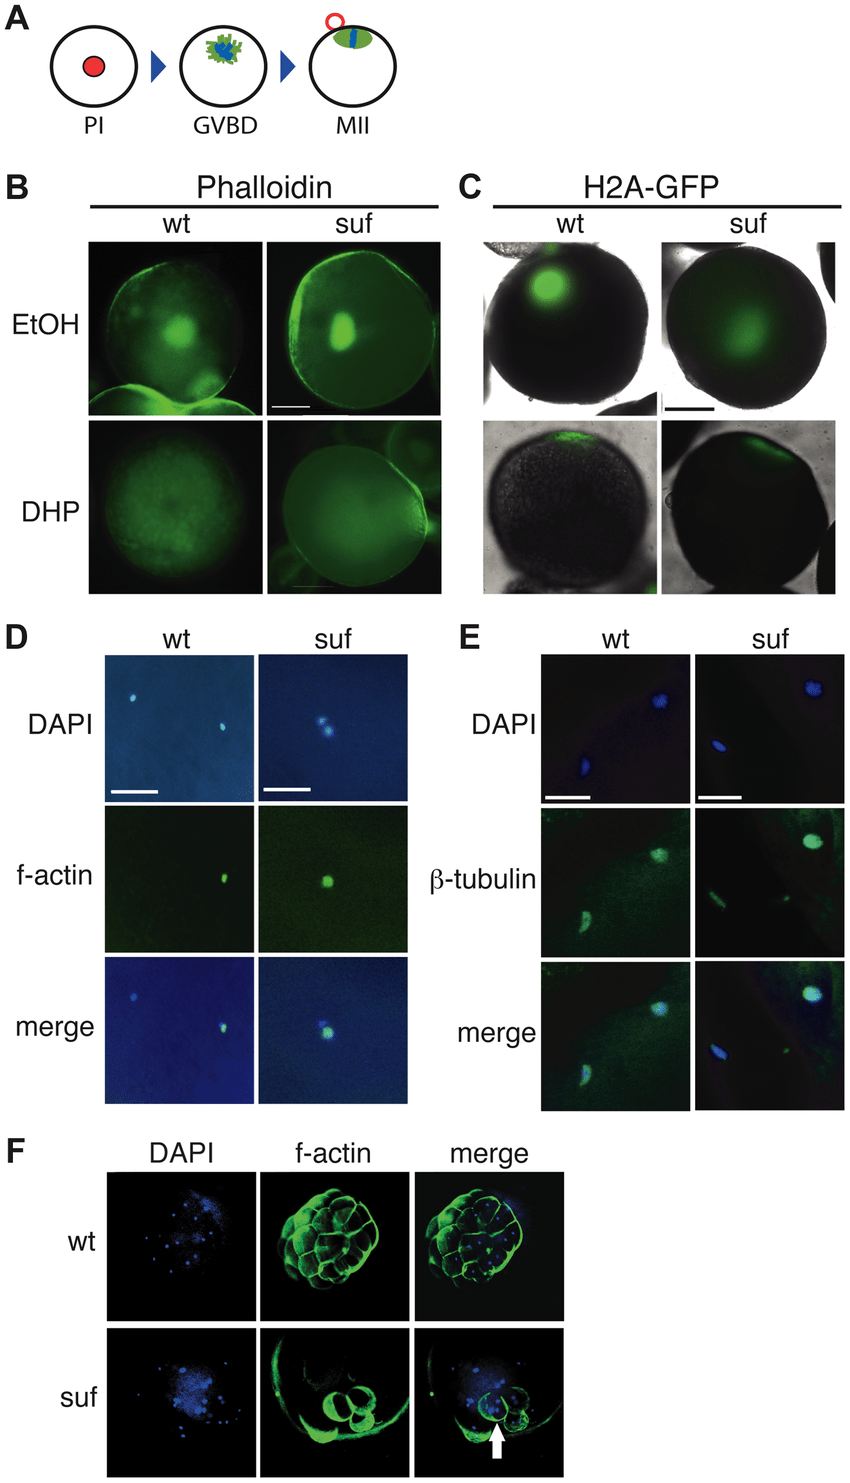 hight resolution of suf is not essential for meiosis but mitosis a steps of meiotic